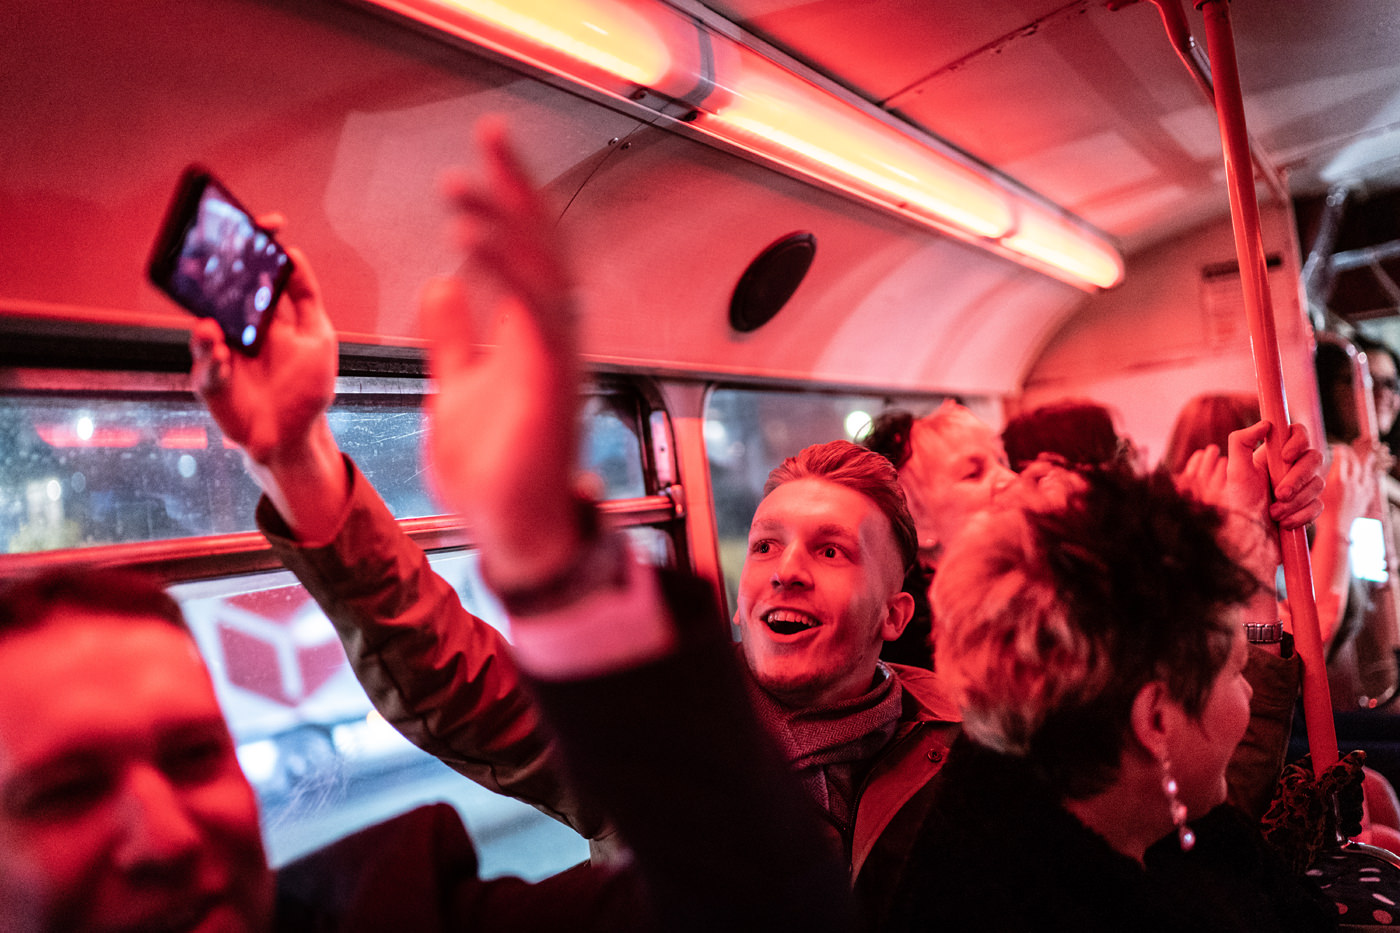 Party in a London Routemaster Bus